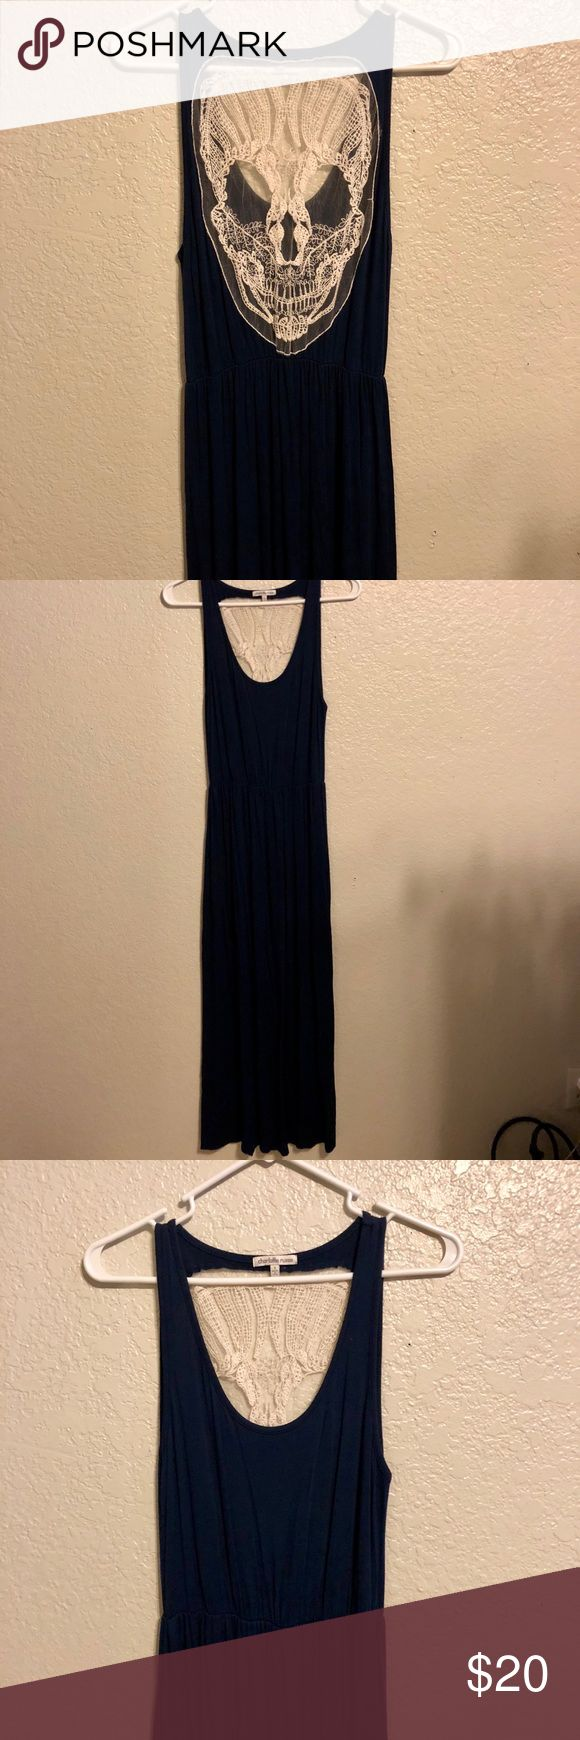 Charlotte Russe Maxi-Dress Super stylish maxi-dress from Charlotte Russe! This dress is navy blue with a very detailed skull on the back. Where skull is located has a netting-like back making it see-through. Super cute and breezy for the spring & summer. Size S but could also fit a M. Perfect condition. No flaws. Charlotte Russe Dresses Maxi